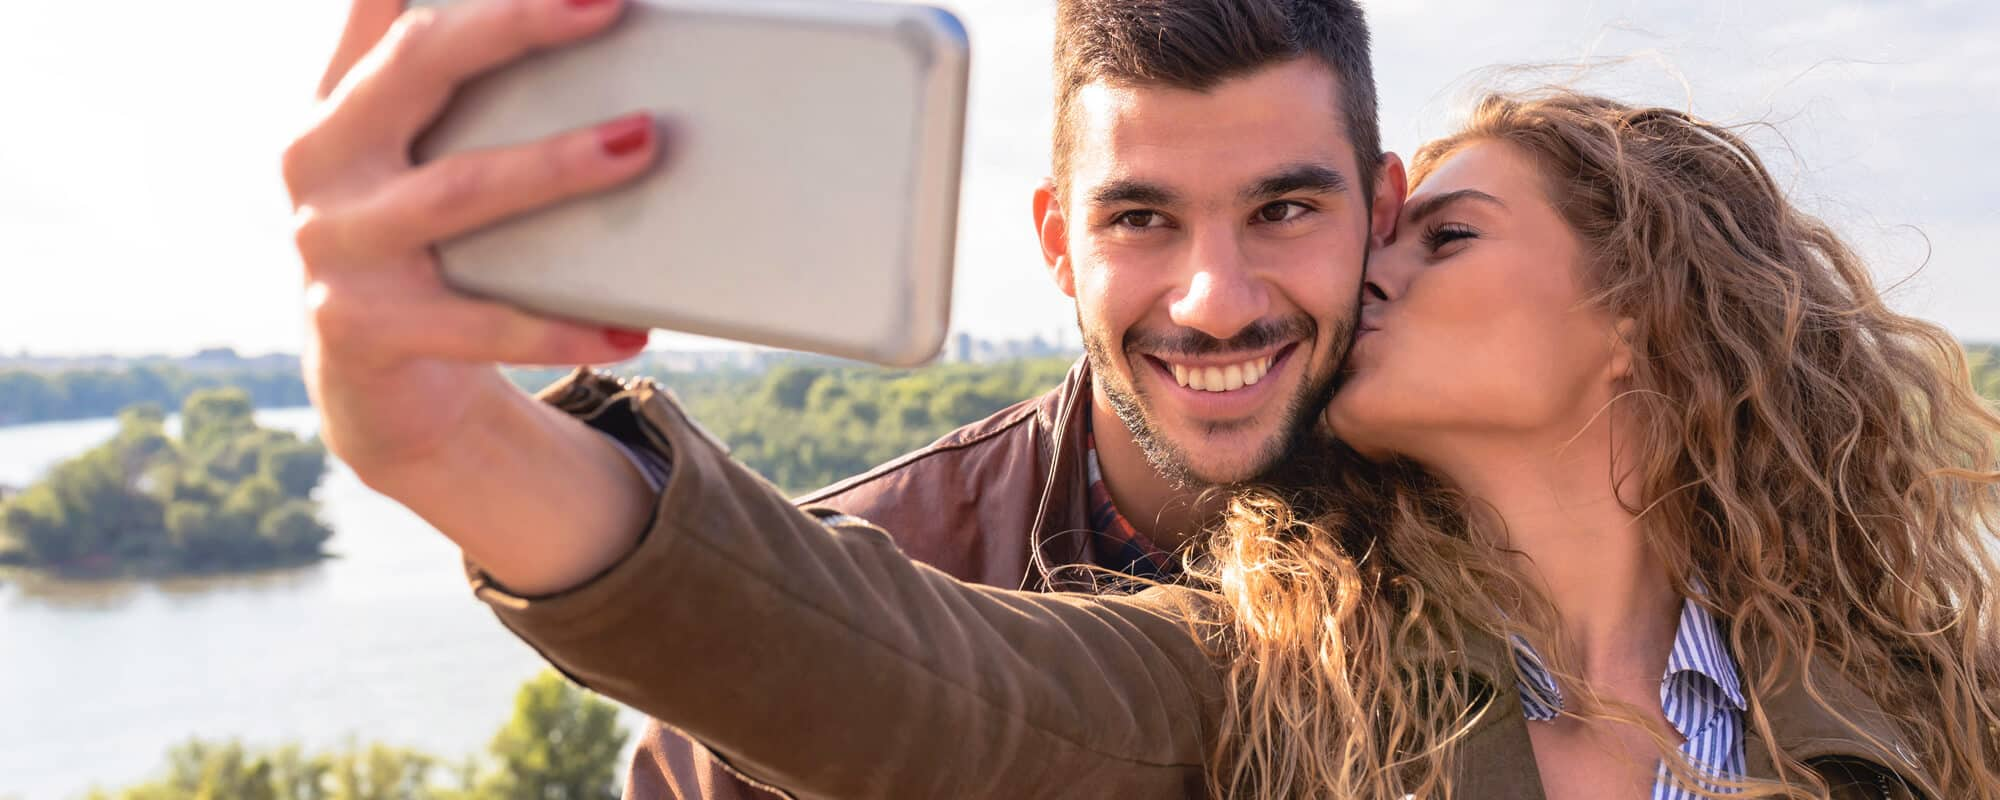 Keeping a long-distance relationship alive savvy